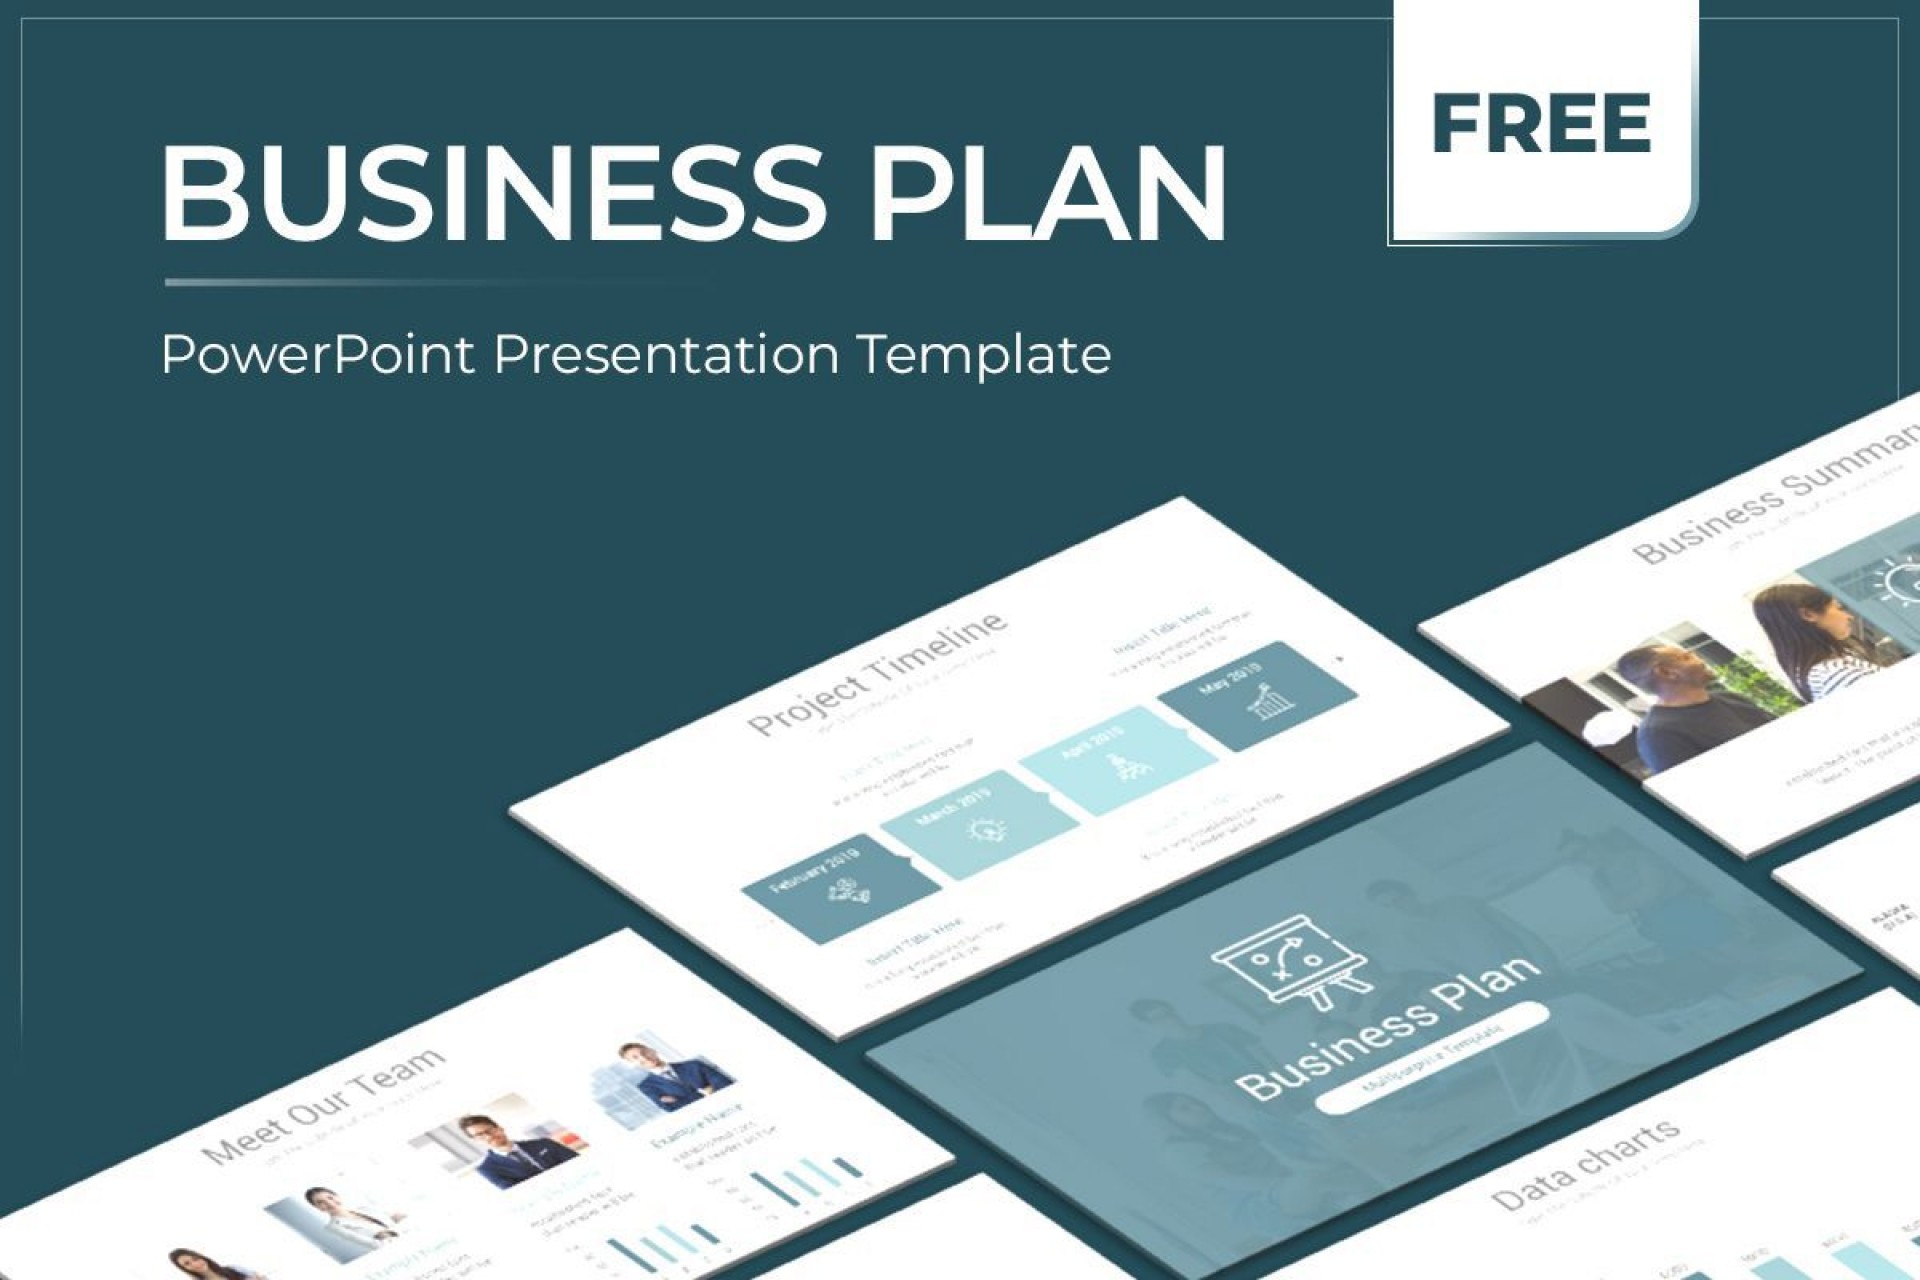 002 Amazing Free Busines Proposal Template Powerpoint Photo  Best Plan Ppt 2020 Sale1920